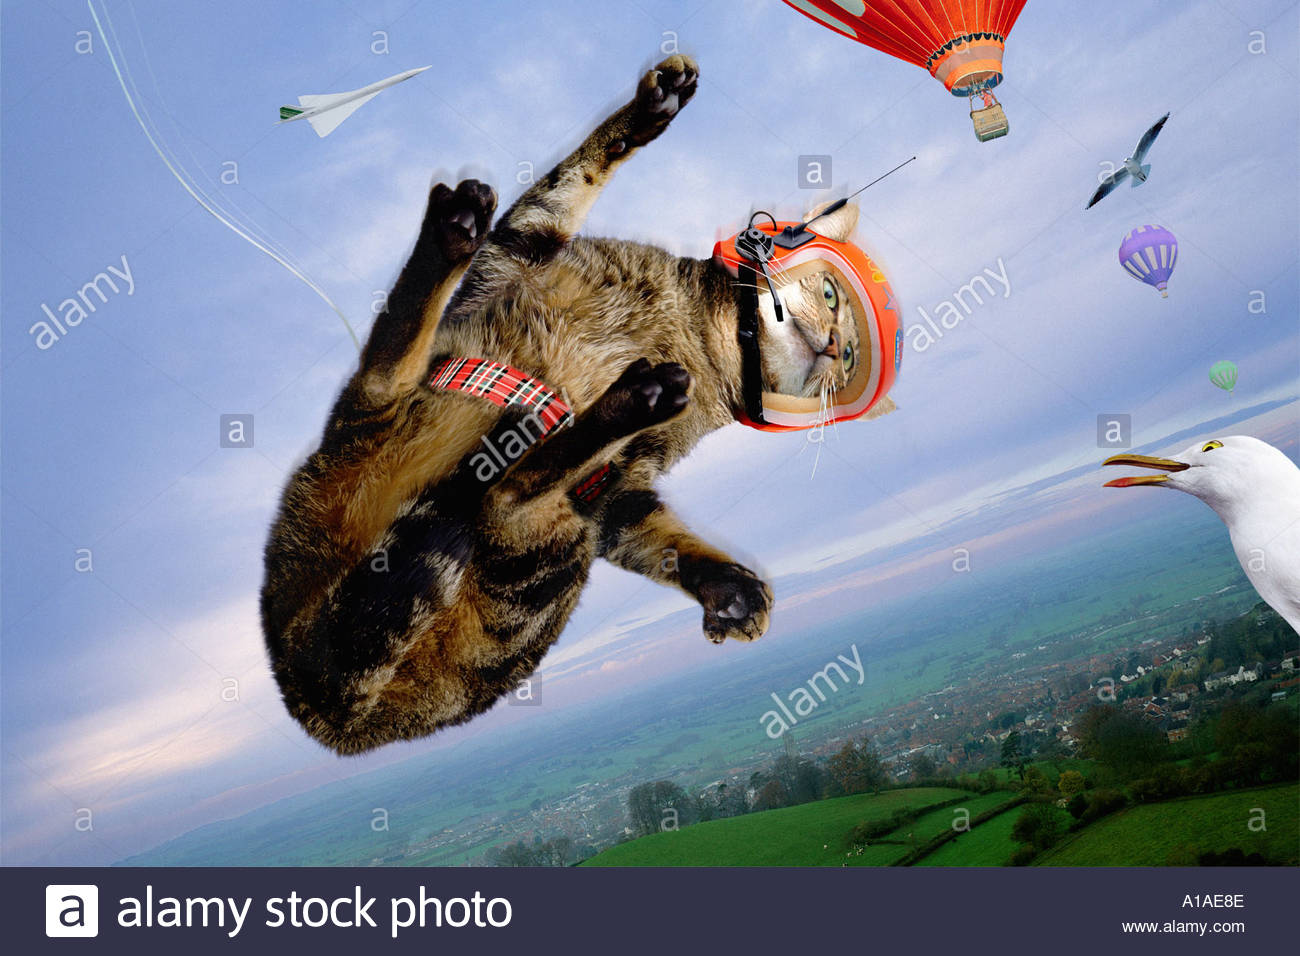 Cat on a bungee jump Immagini Stock